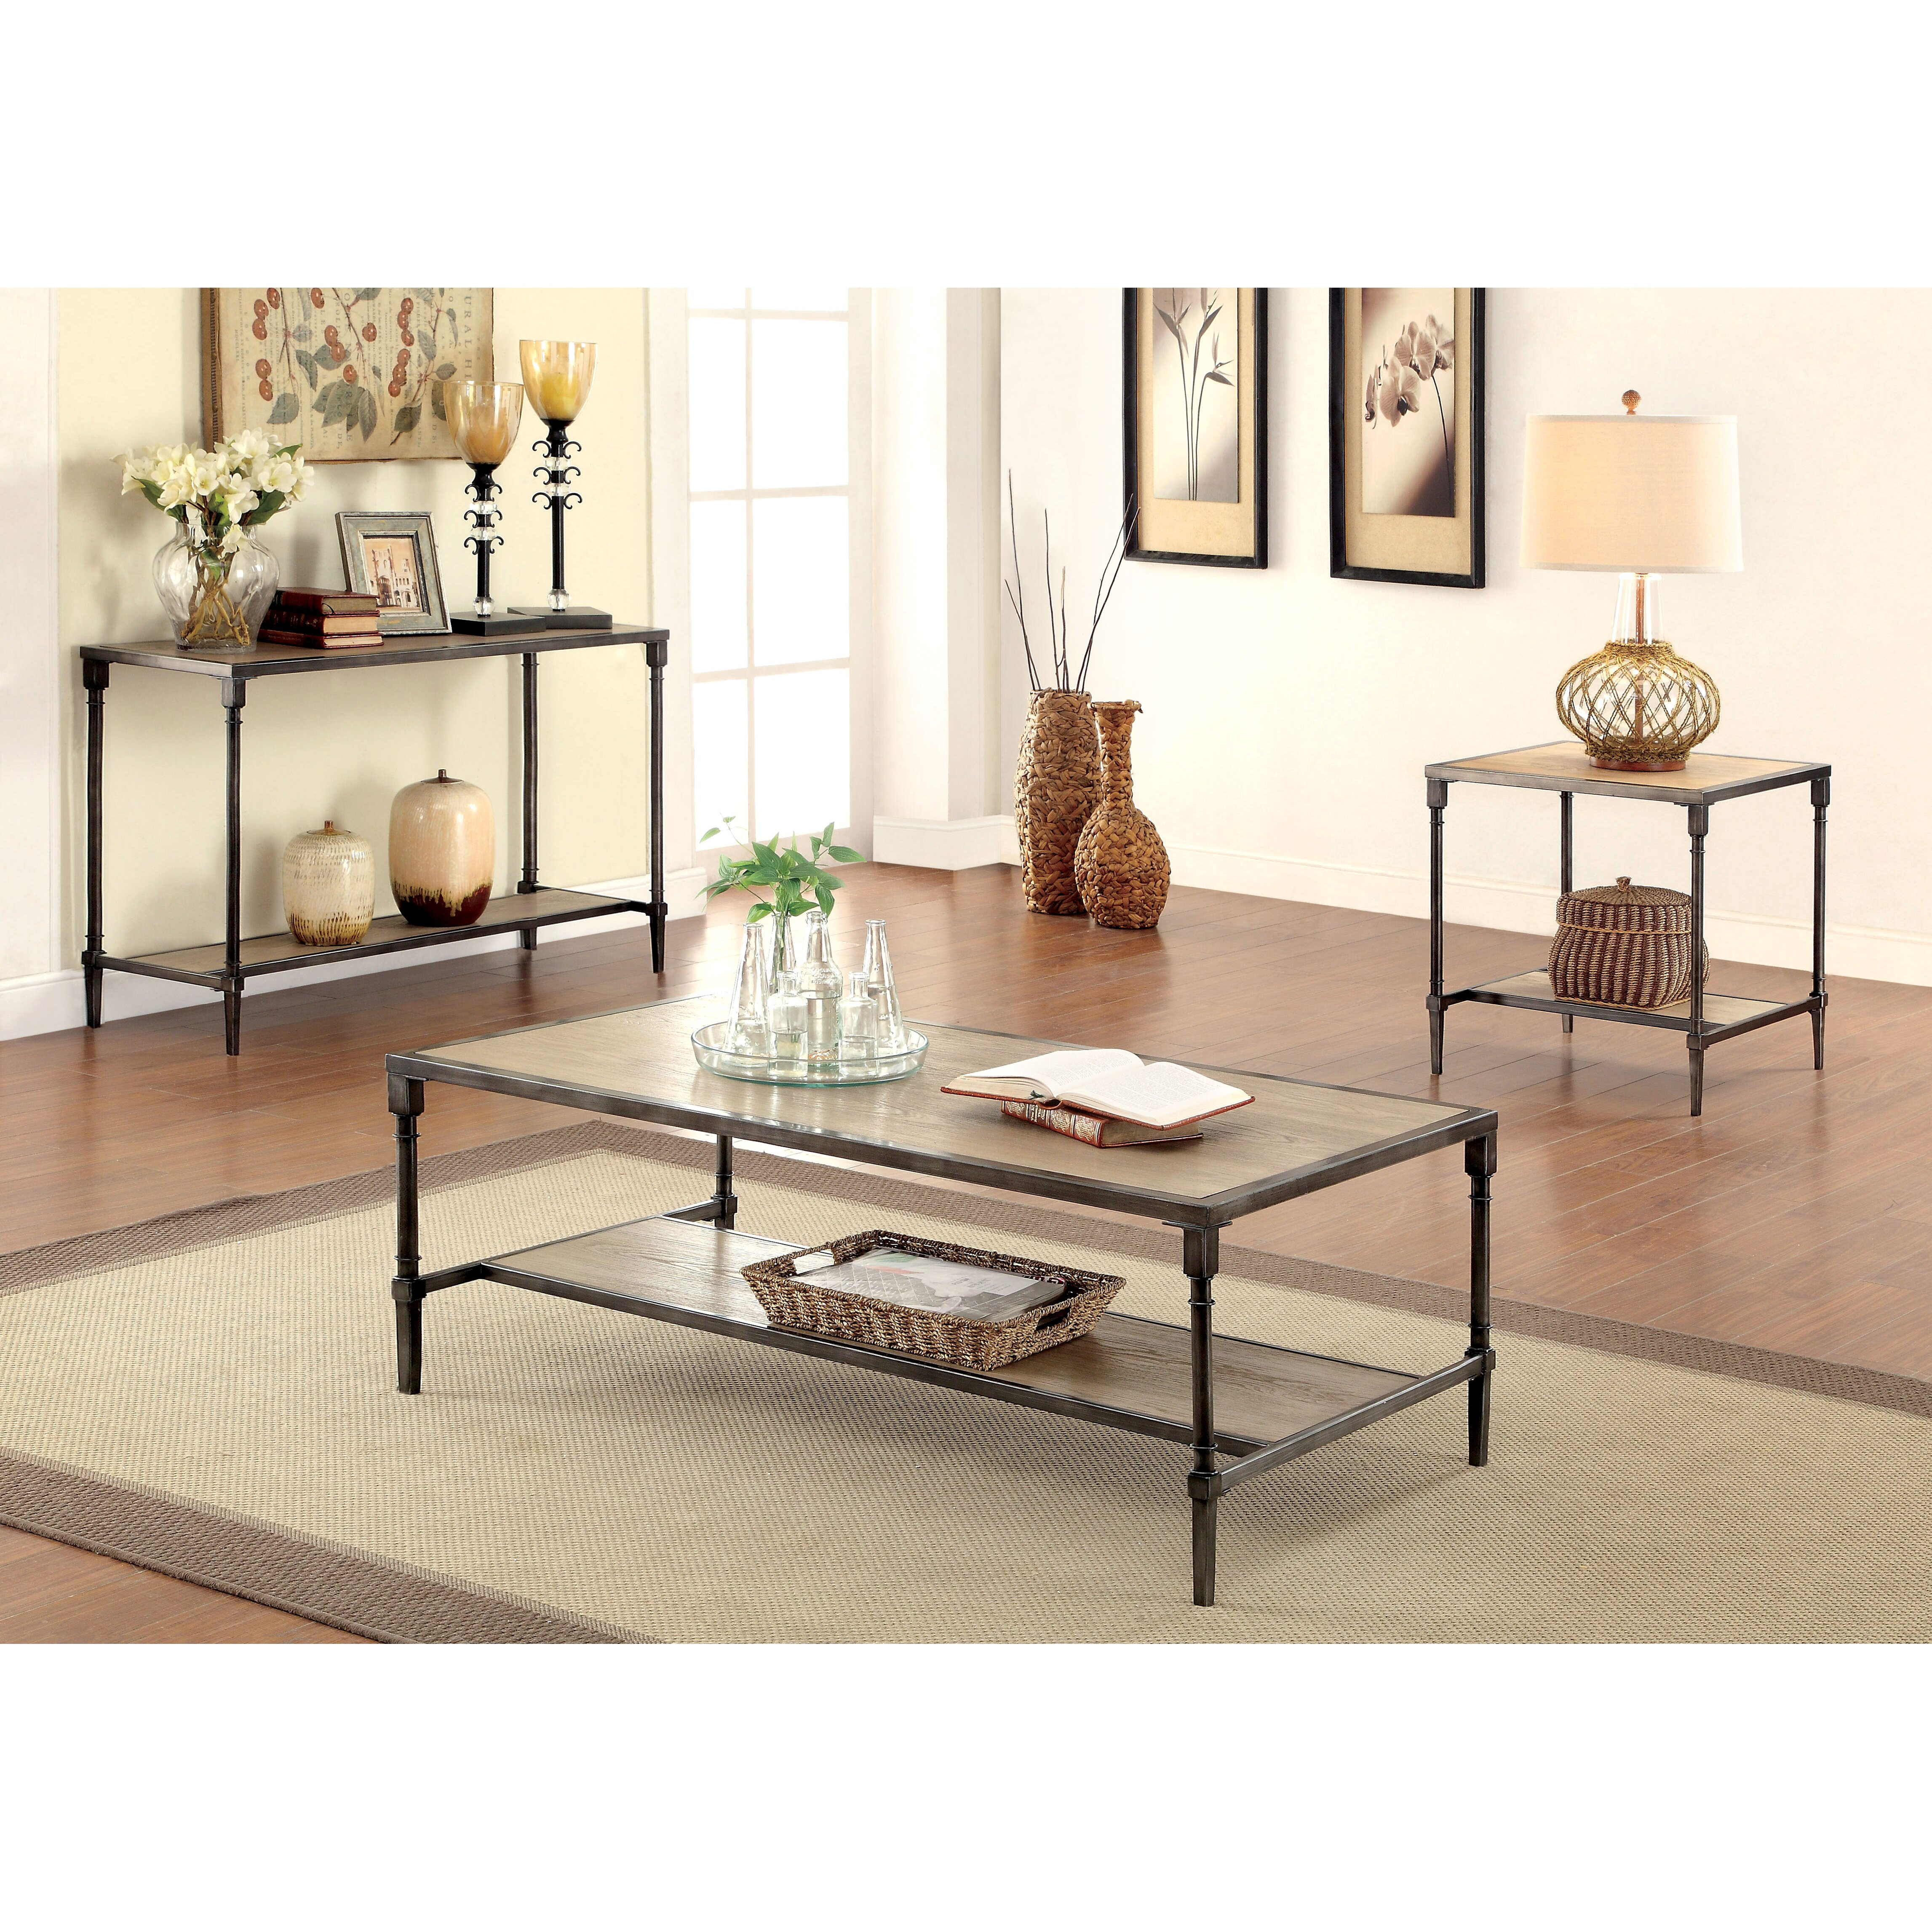 Hokku Coffee Table Sets: Hokku Designs Leons Coffee Table Set & Reviews